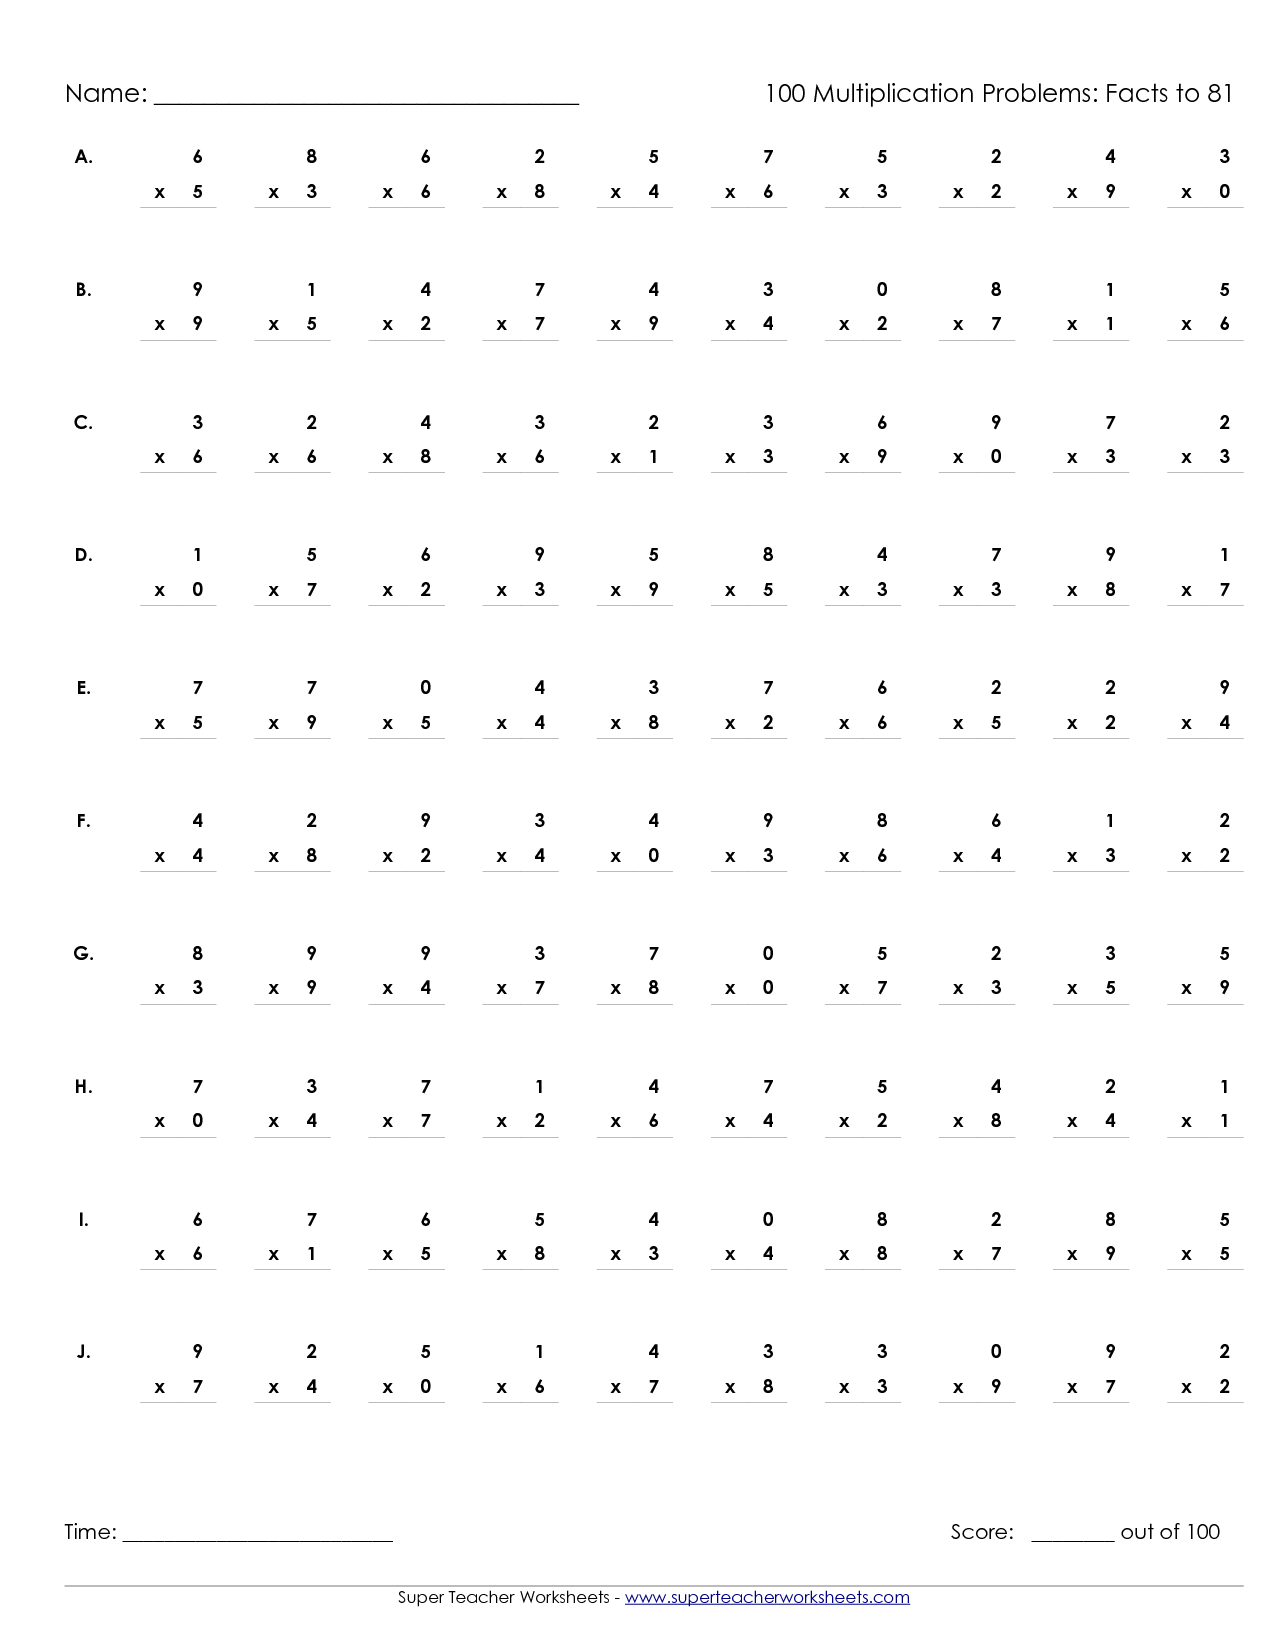 Math Worksheet Print Out Times | Printable Worksheets And regarding Printable Multiplication Worksheets 50 Problems